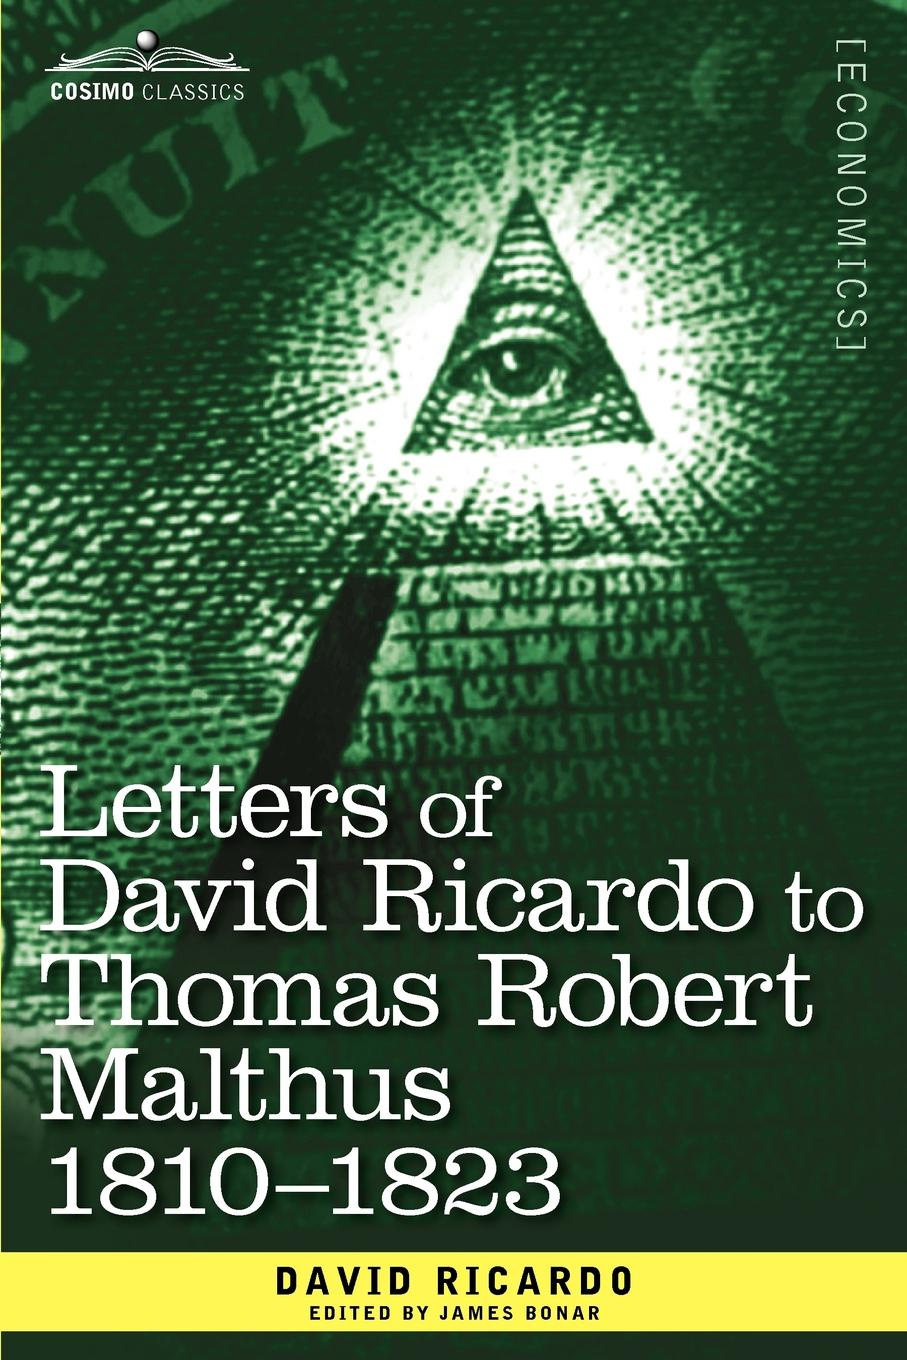 David Ricardo Letters of David Ricardo to Thomas Robert Malthus 1810 -1823 anne dutton s letters on spiritual subjects